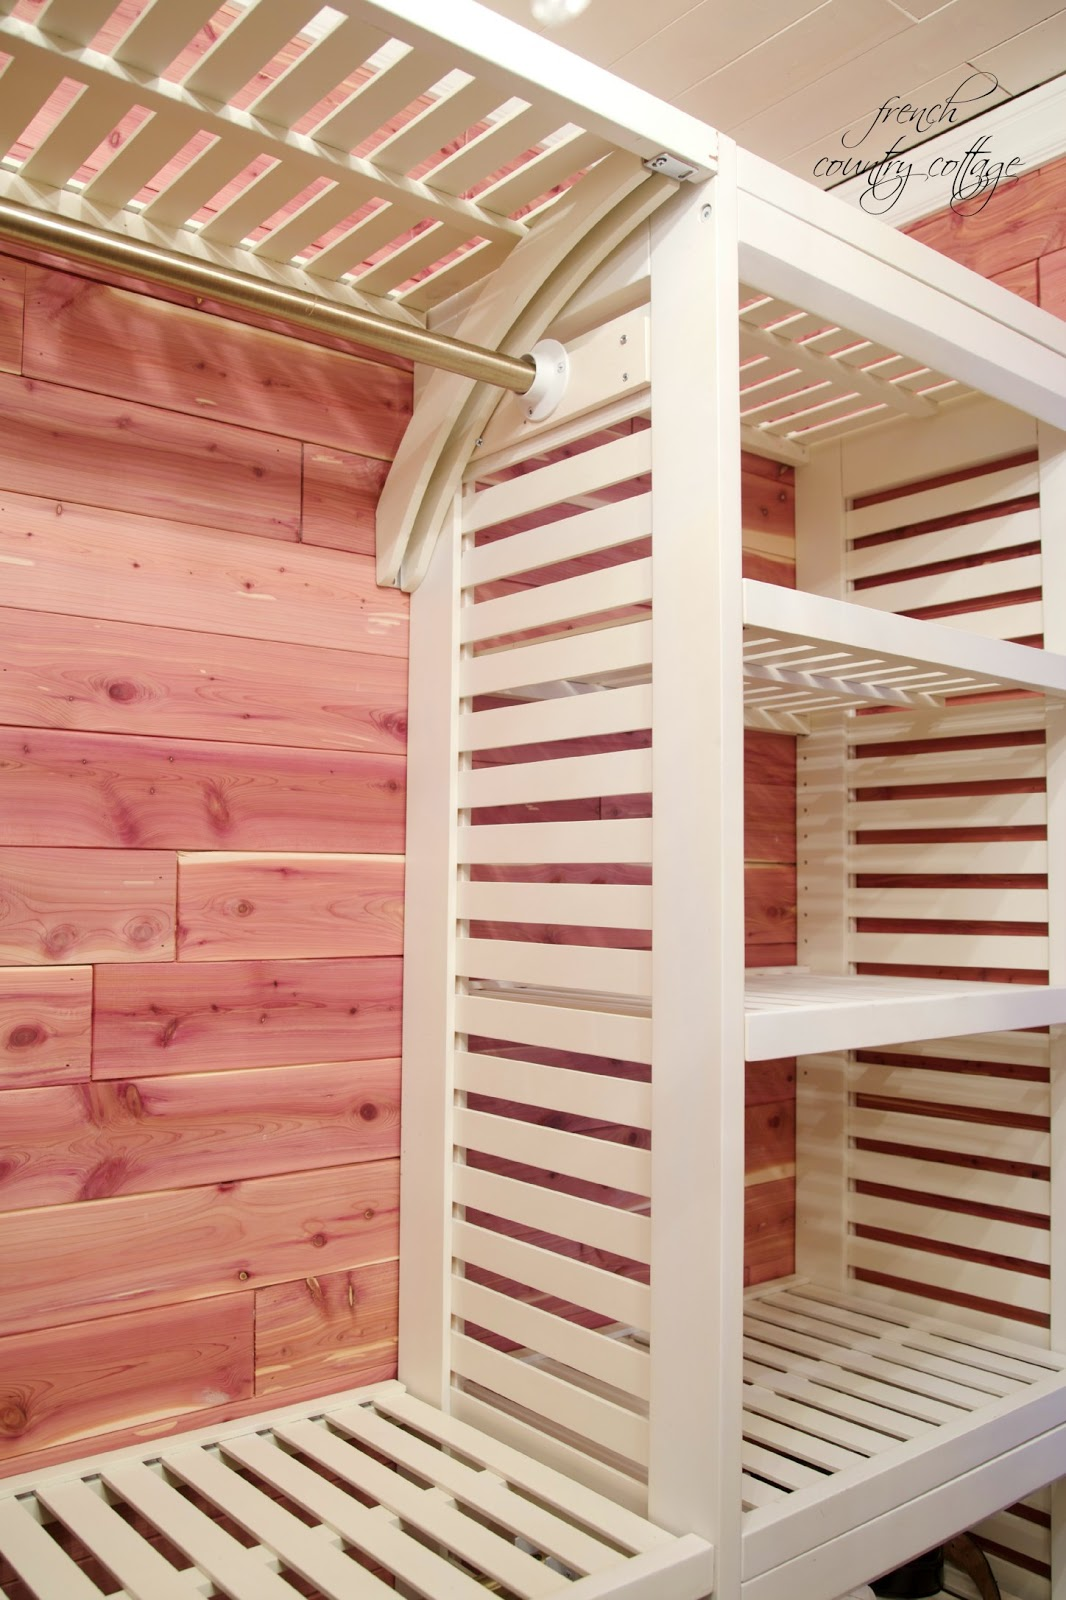 Inspiring Storage System Design Ideas with Cedar Closet Kit: Cedar Closet Kit | Cedar Paneling For Closets | 4×8 Cedar Closet Panels